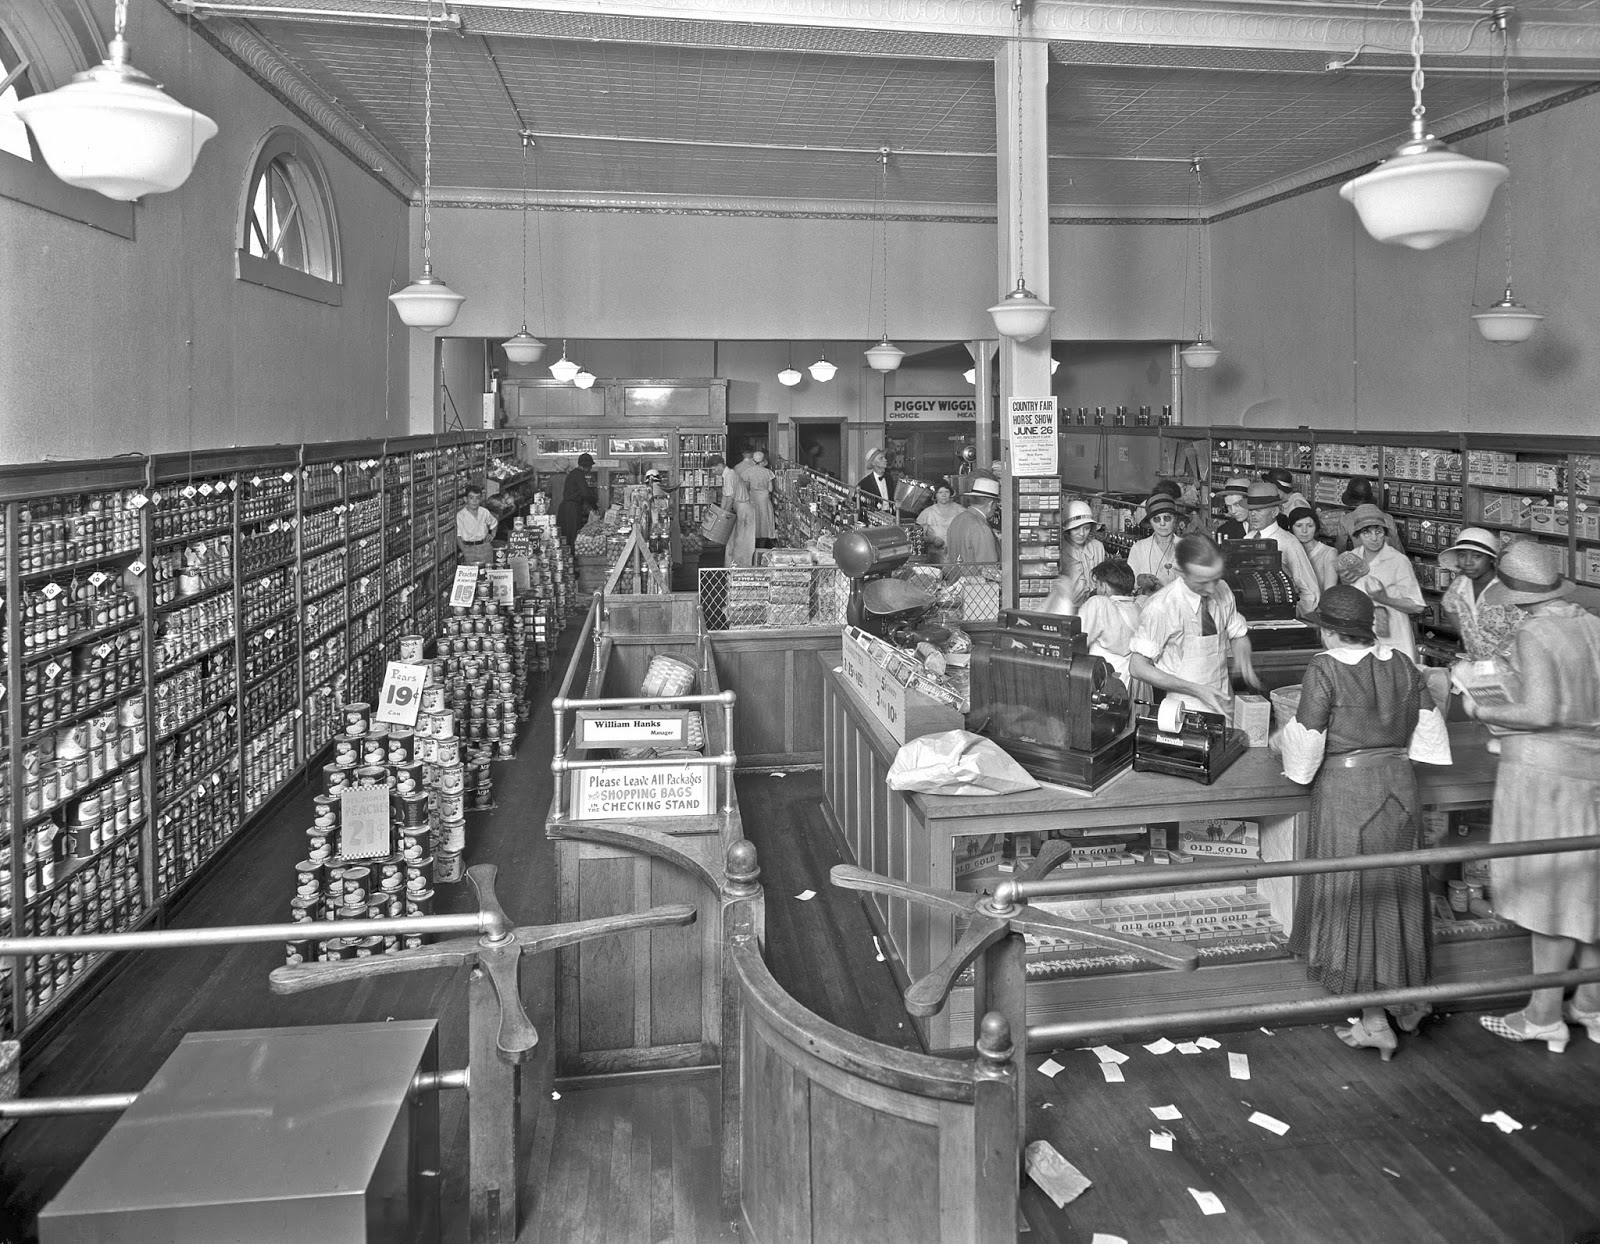 September 6, 1916: The first supermarket opens for business | Knappily